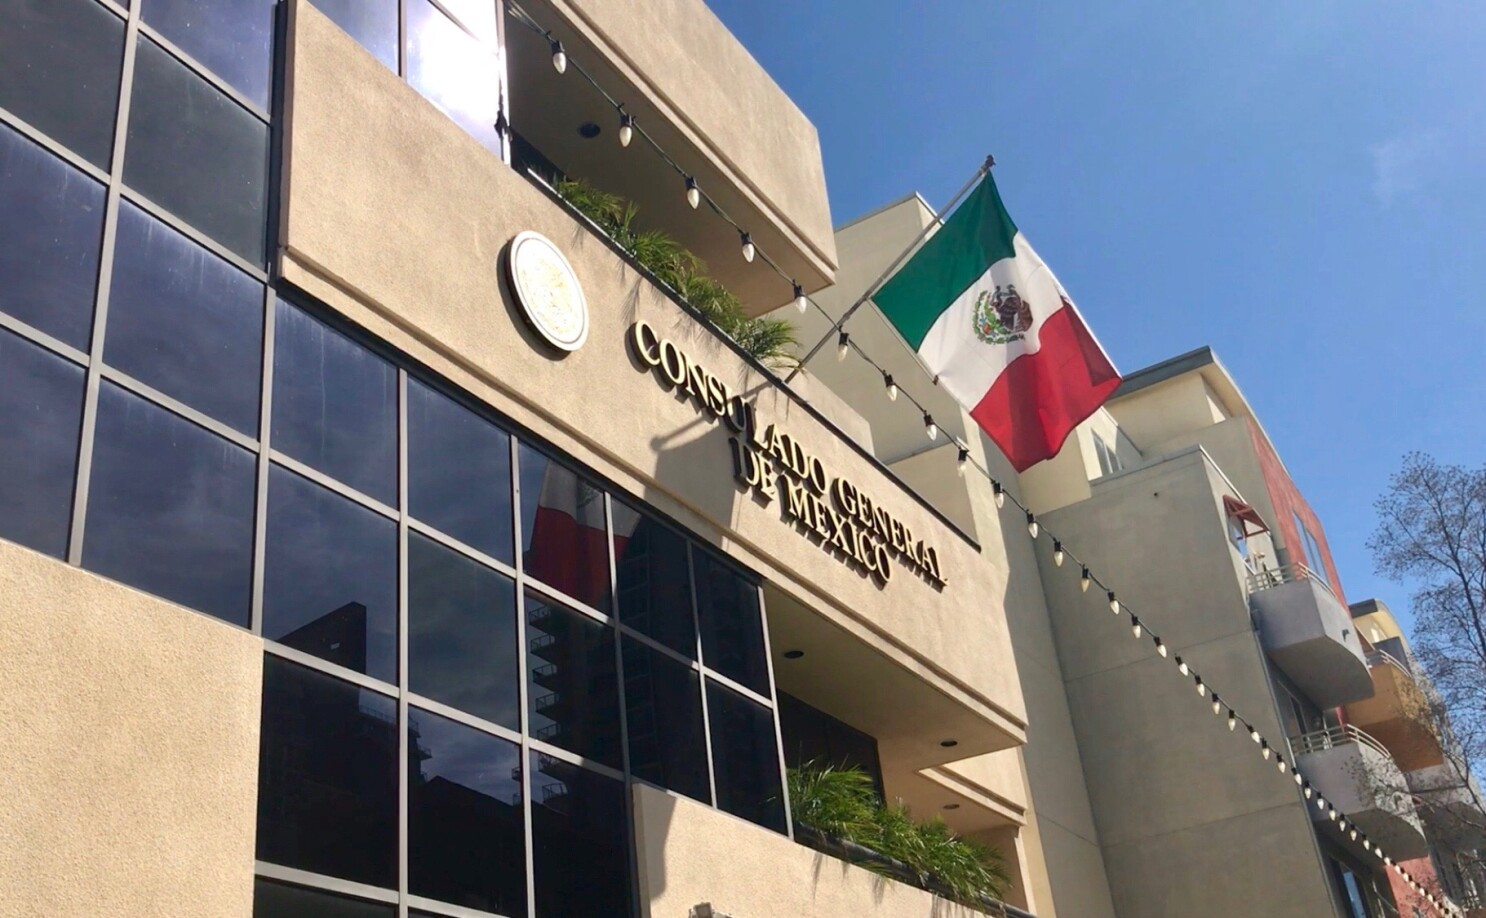 Mexican Consulate in San Diego to extend their 140th anniversary celebration to 2020